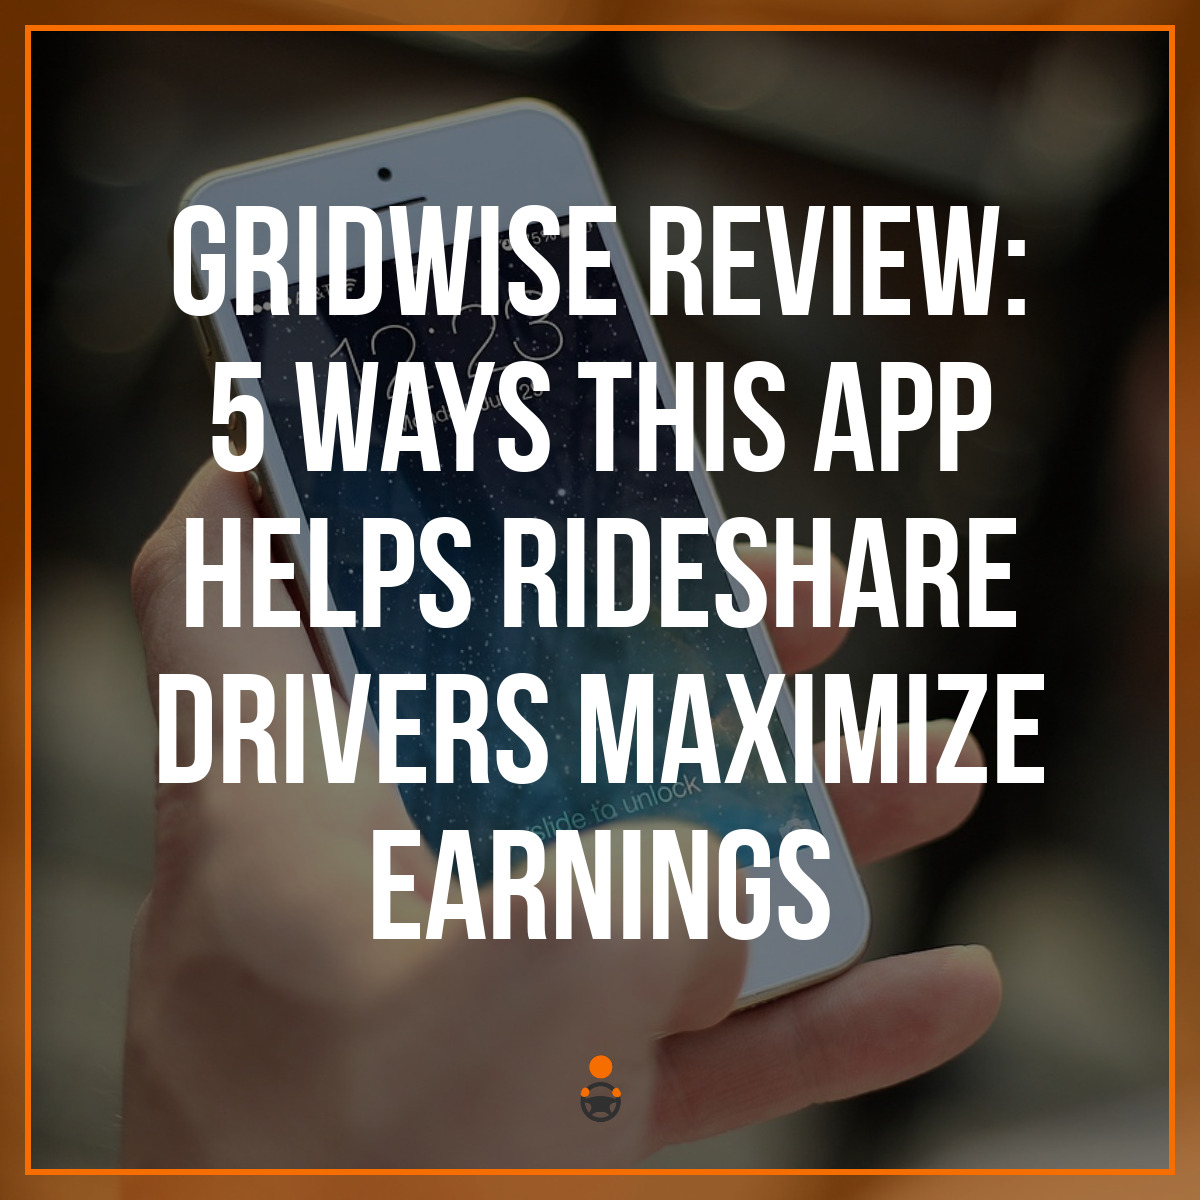 Gridwise Review: 5 Ways This App Helps Rideshare Drivers